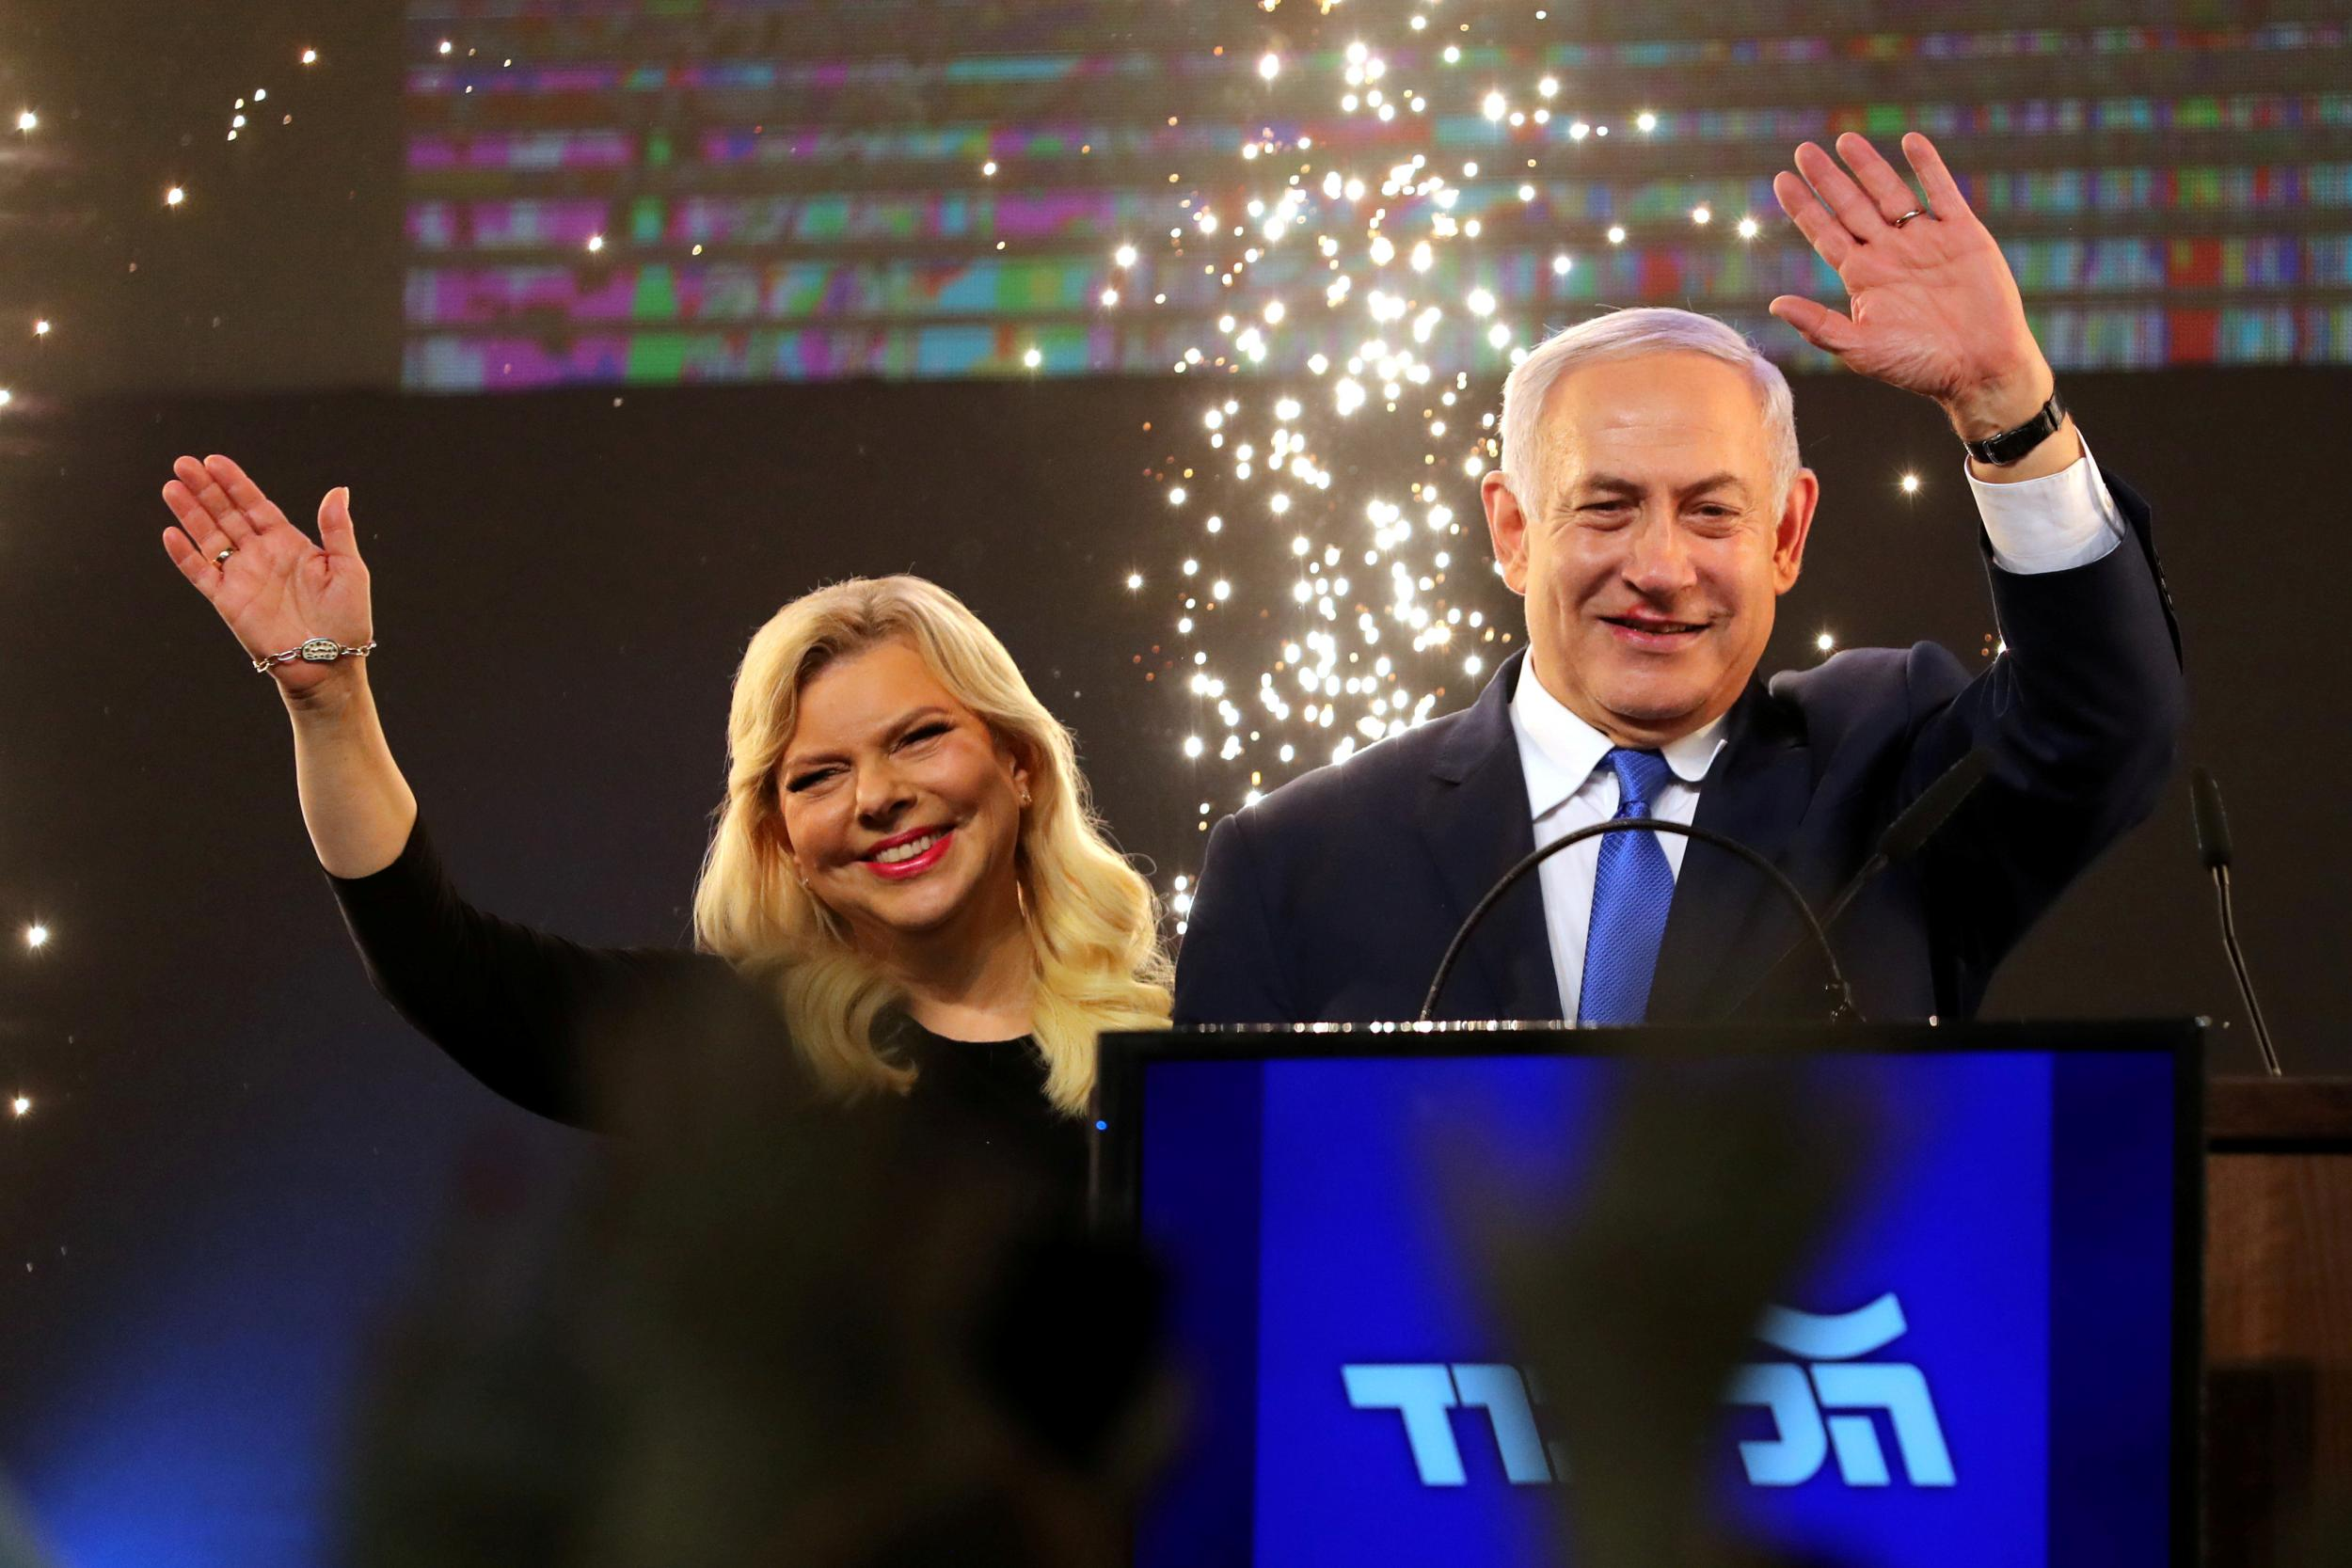 Benjamin Netanyahu - latest news, breaking stories and comment - The